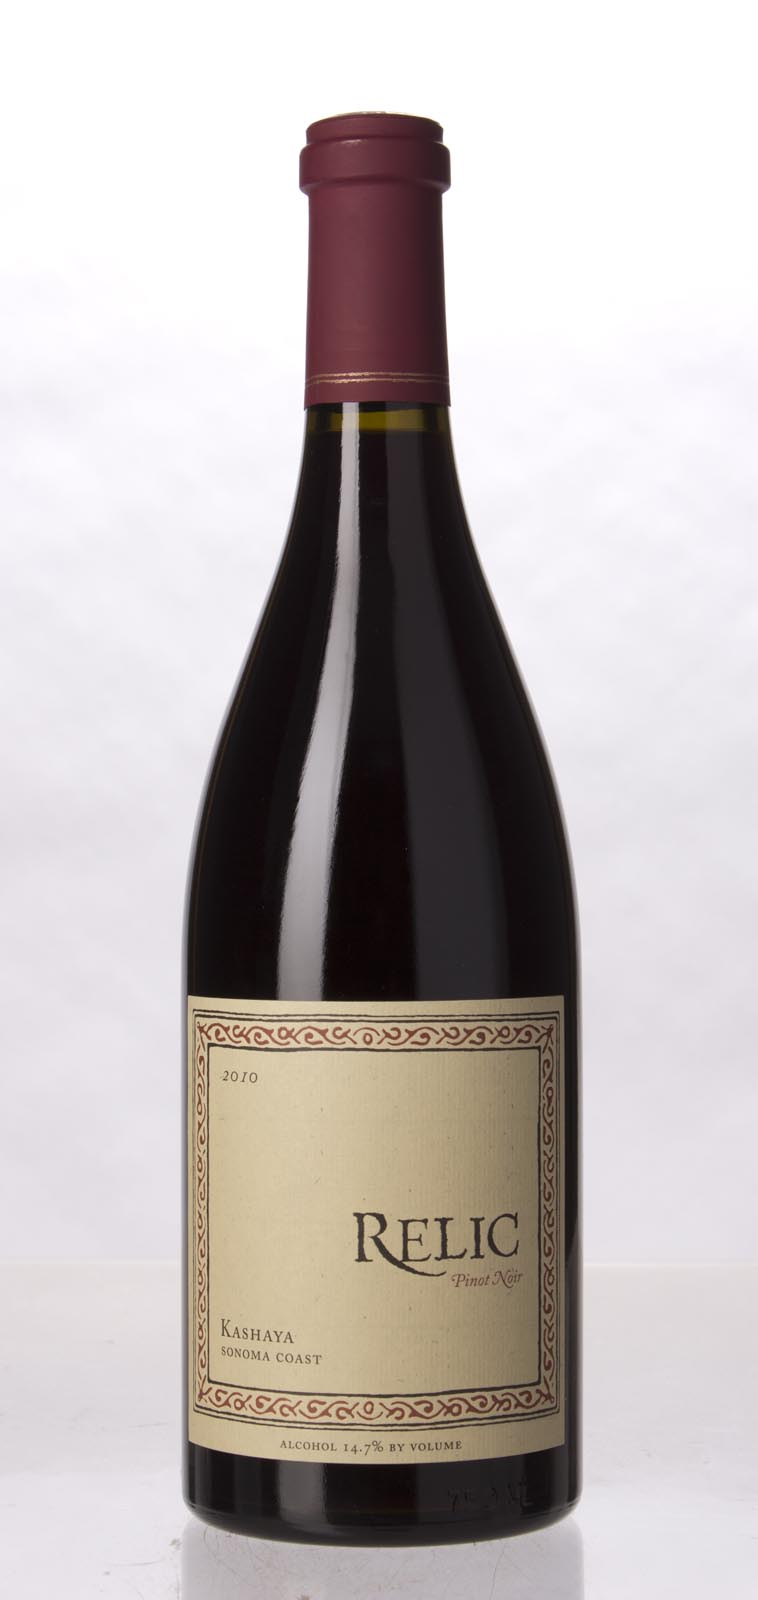 Relic Pinot Noir Kashaya 2010, 750mL () from The BPW - Merchants of rare and fine wines.